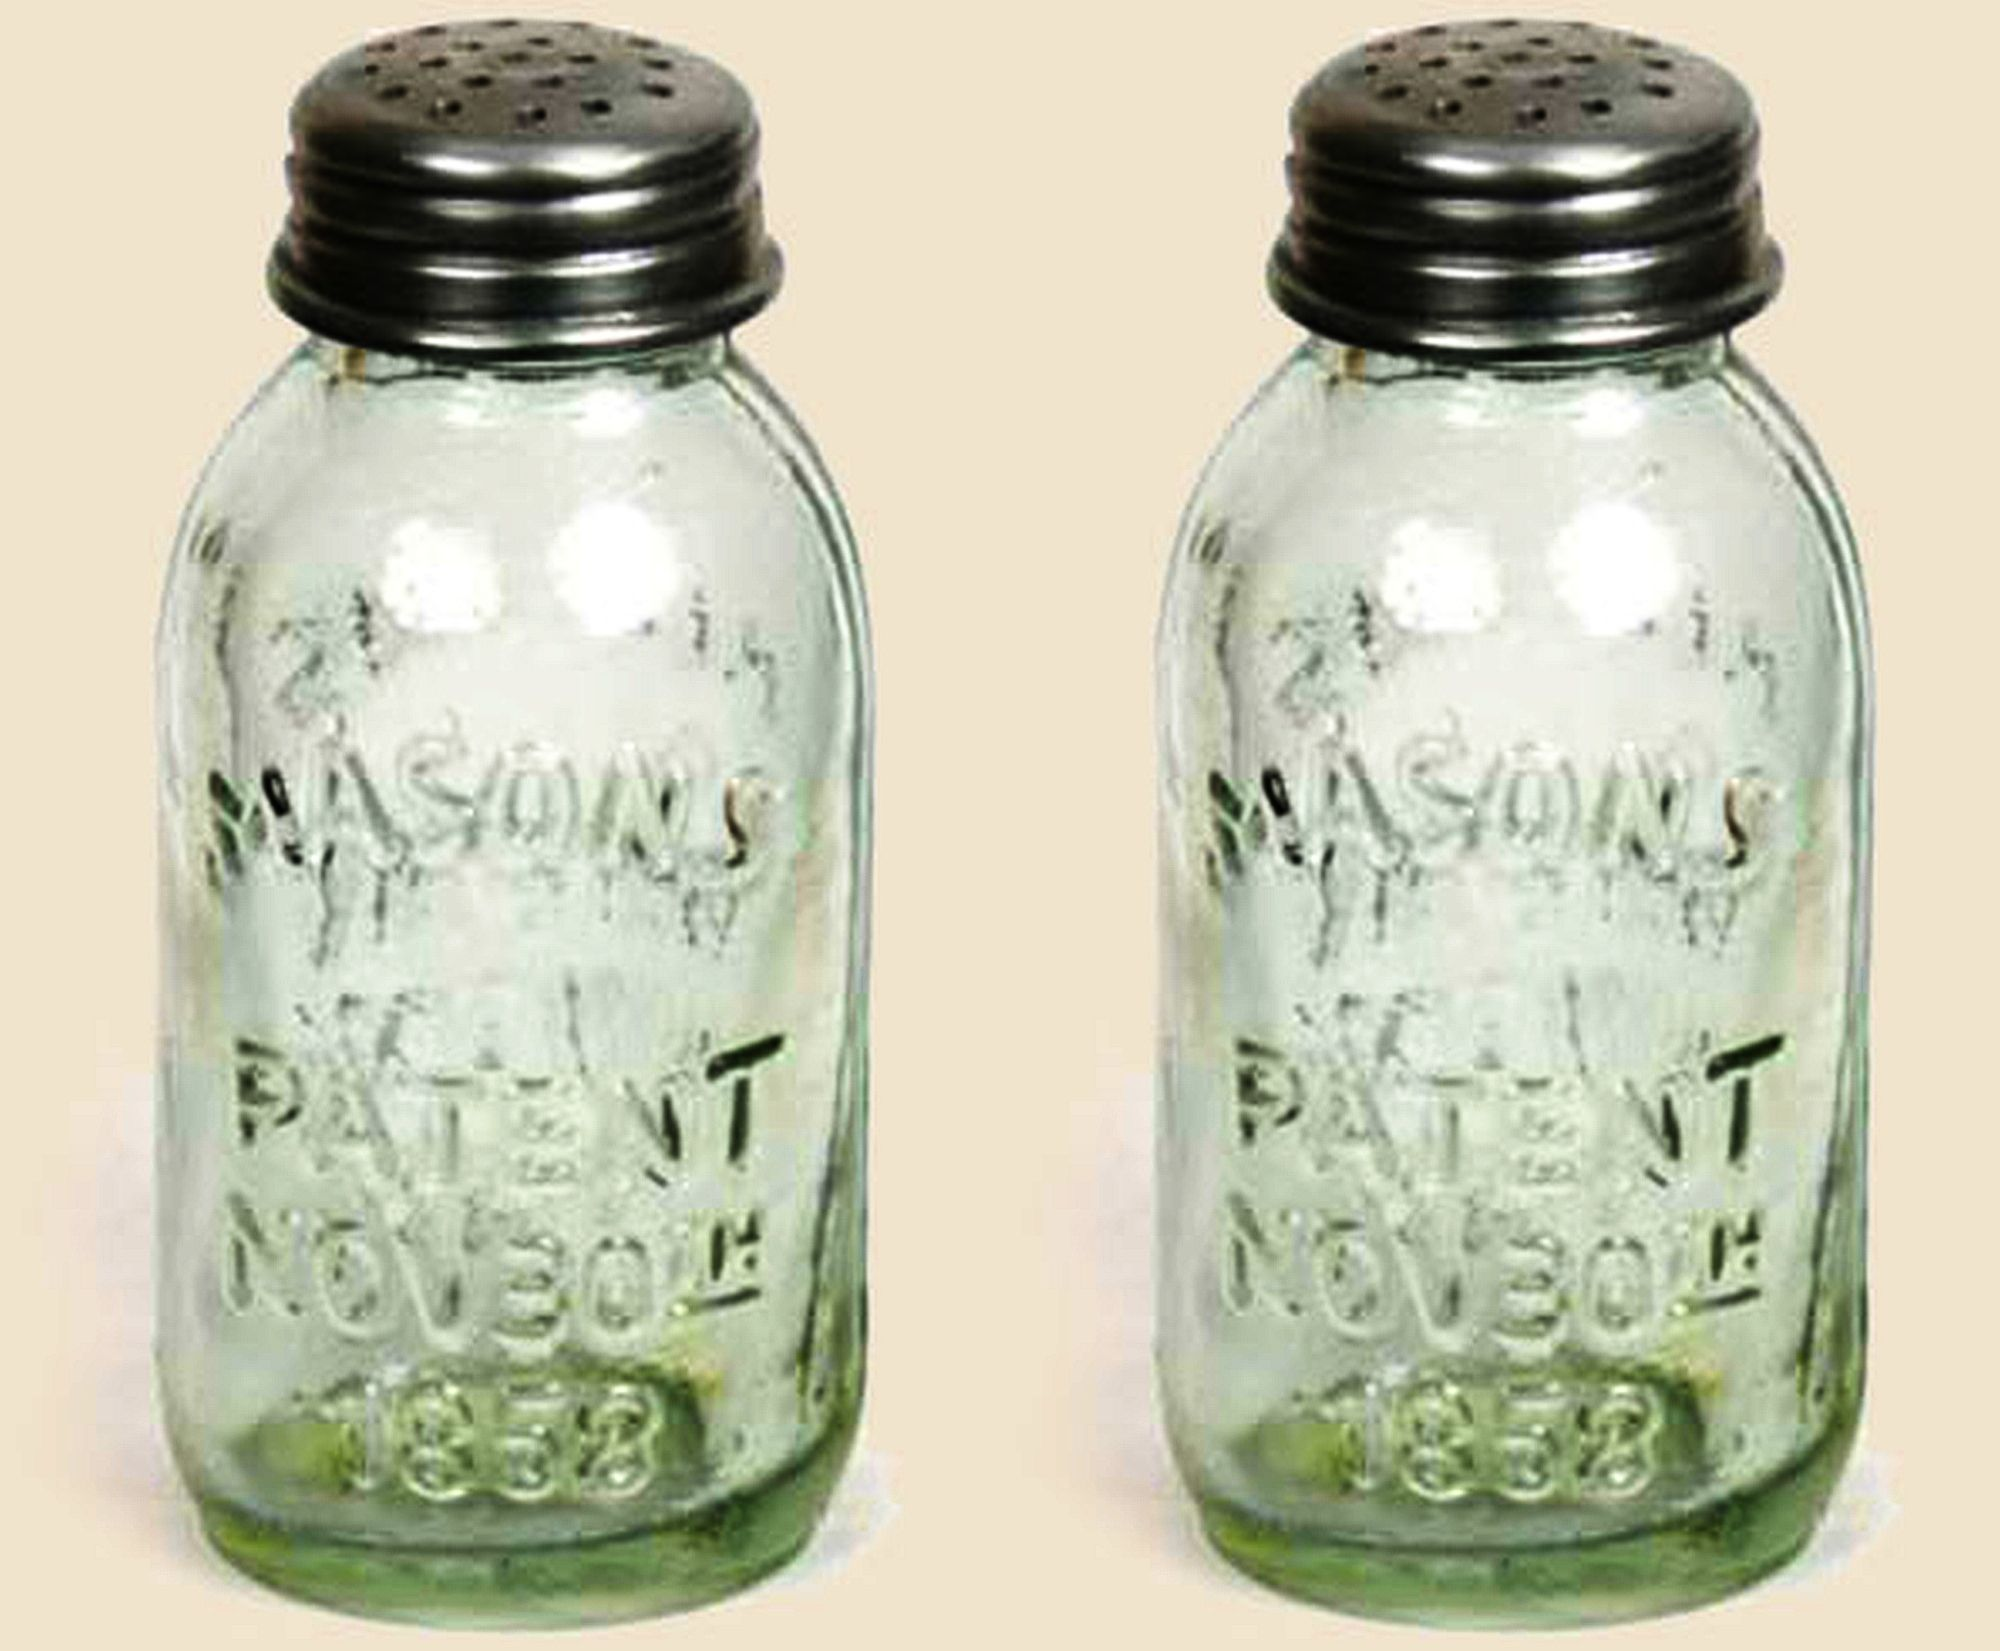 Unique Vintage Rustic Miniature Mason s Patent Nov 30th 1858 Salt